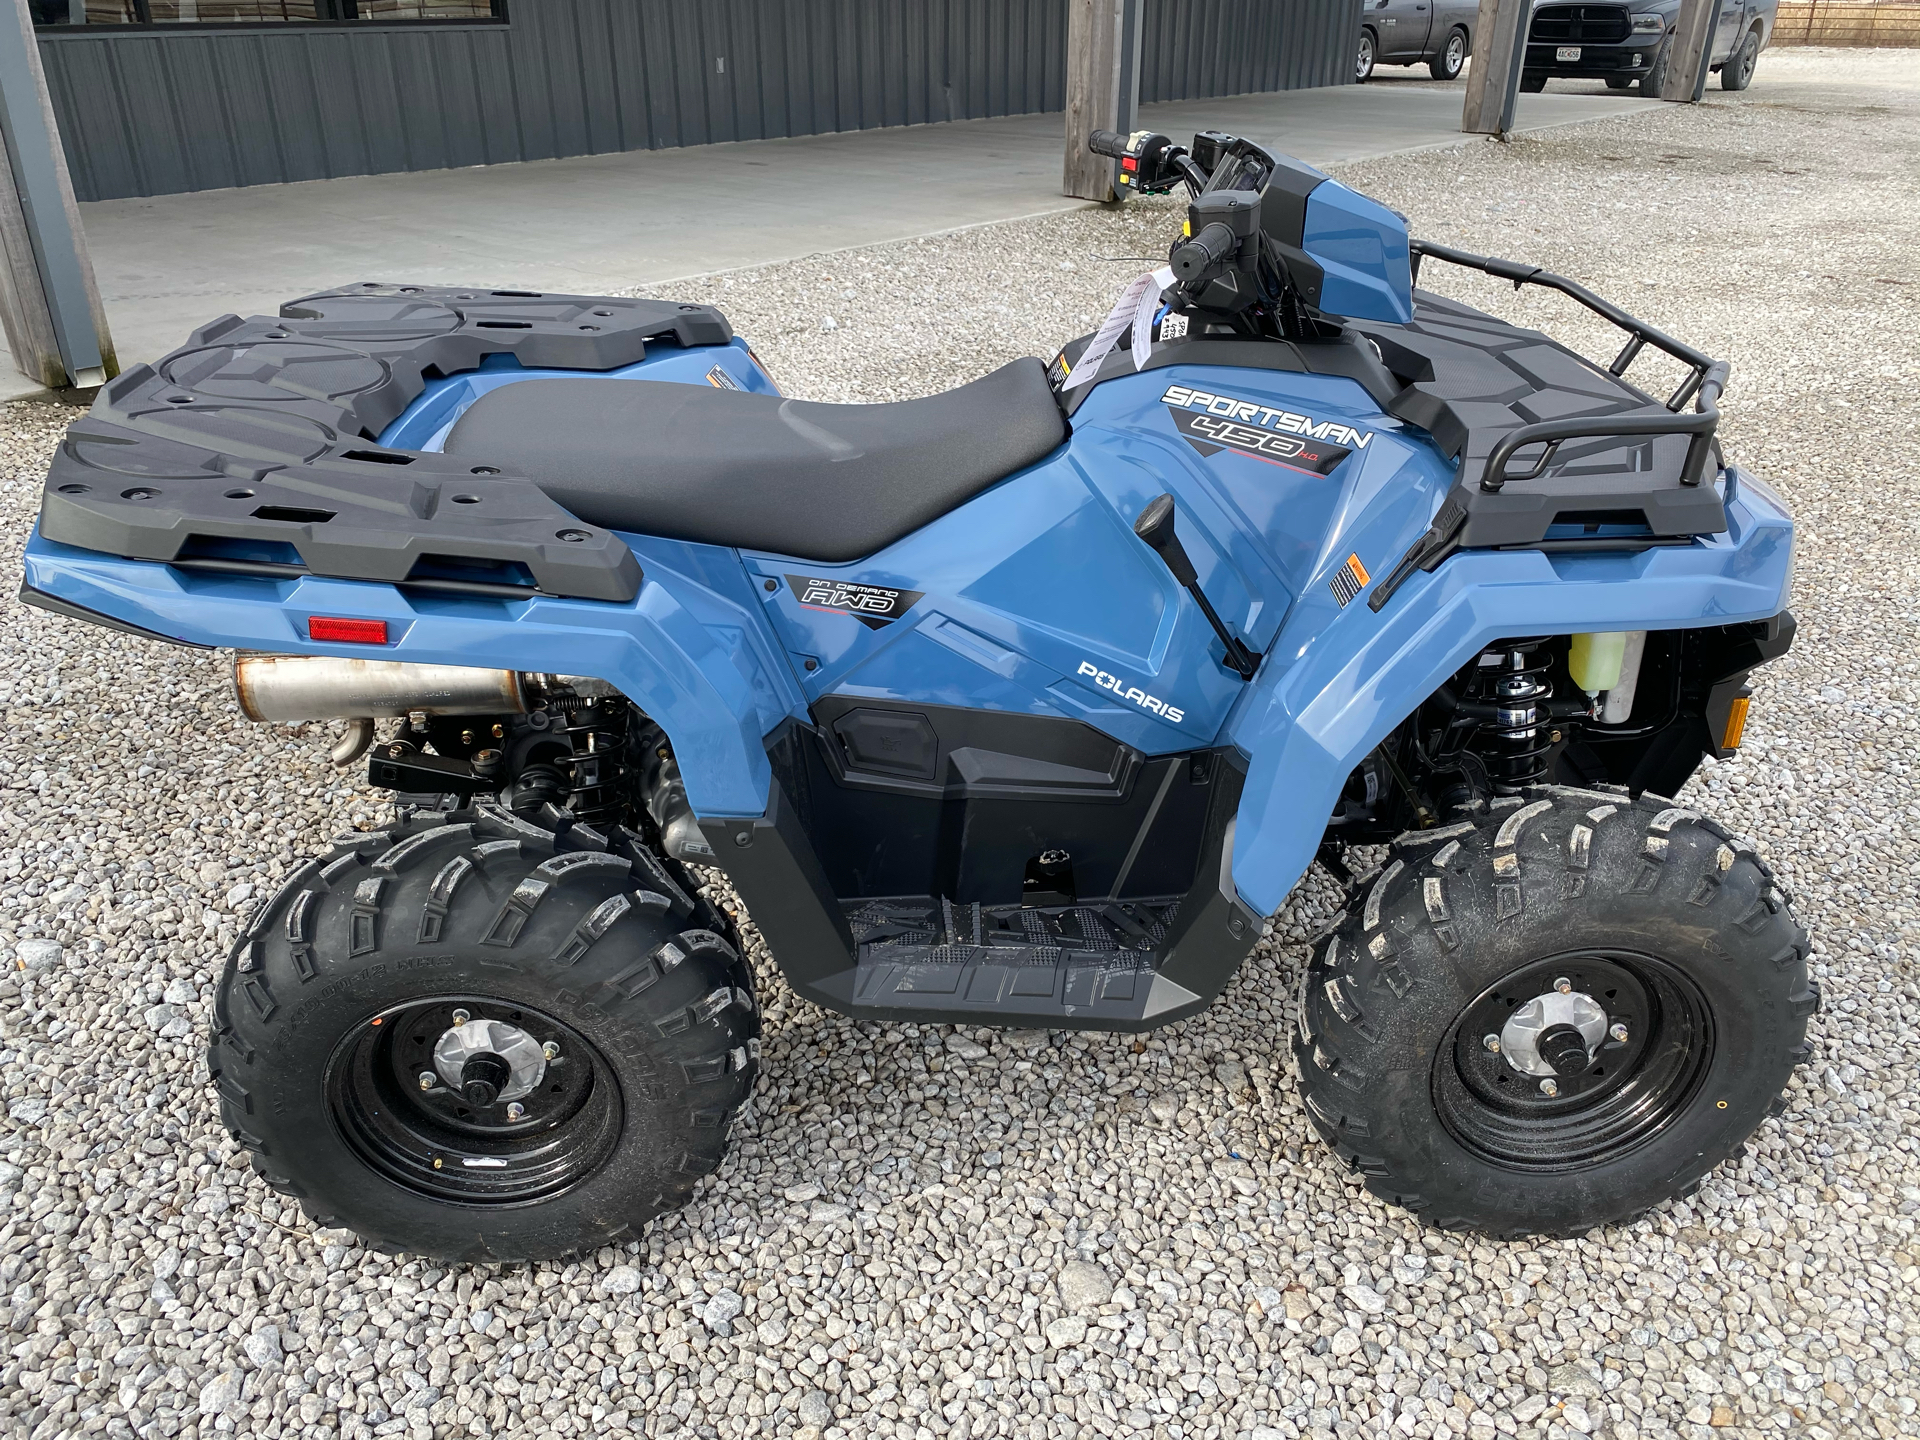 2021 Polaris Sportsman 450 H.O. in Bolivar, Missouri - Photo 3